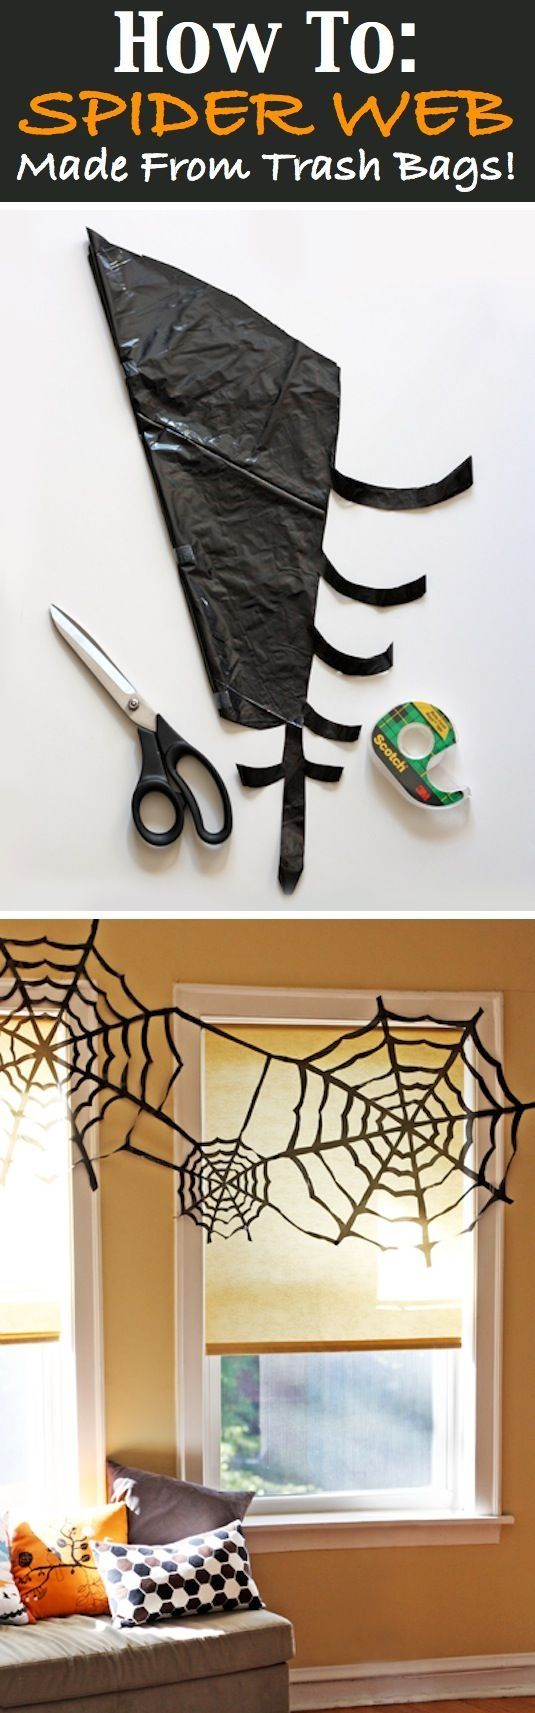 16 Easy But Awesome Homemade Halloween Decorations by echkbet.